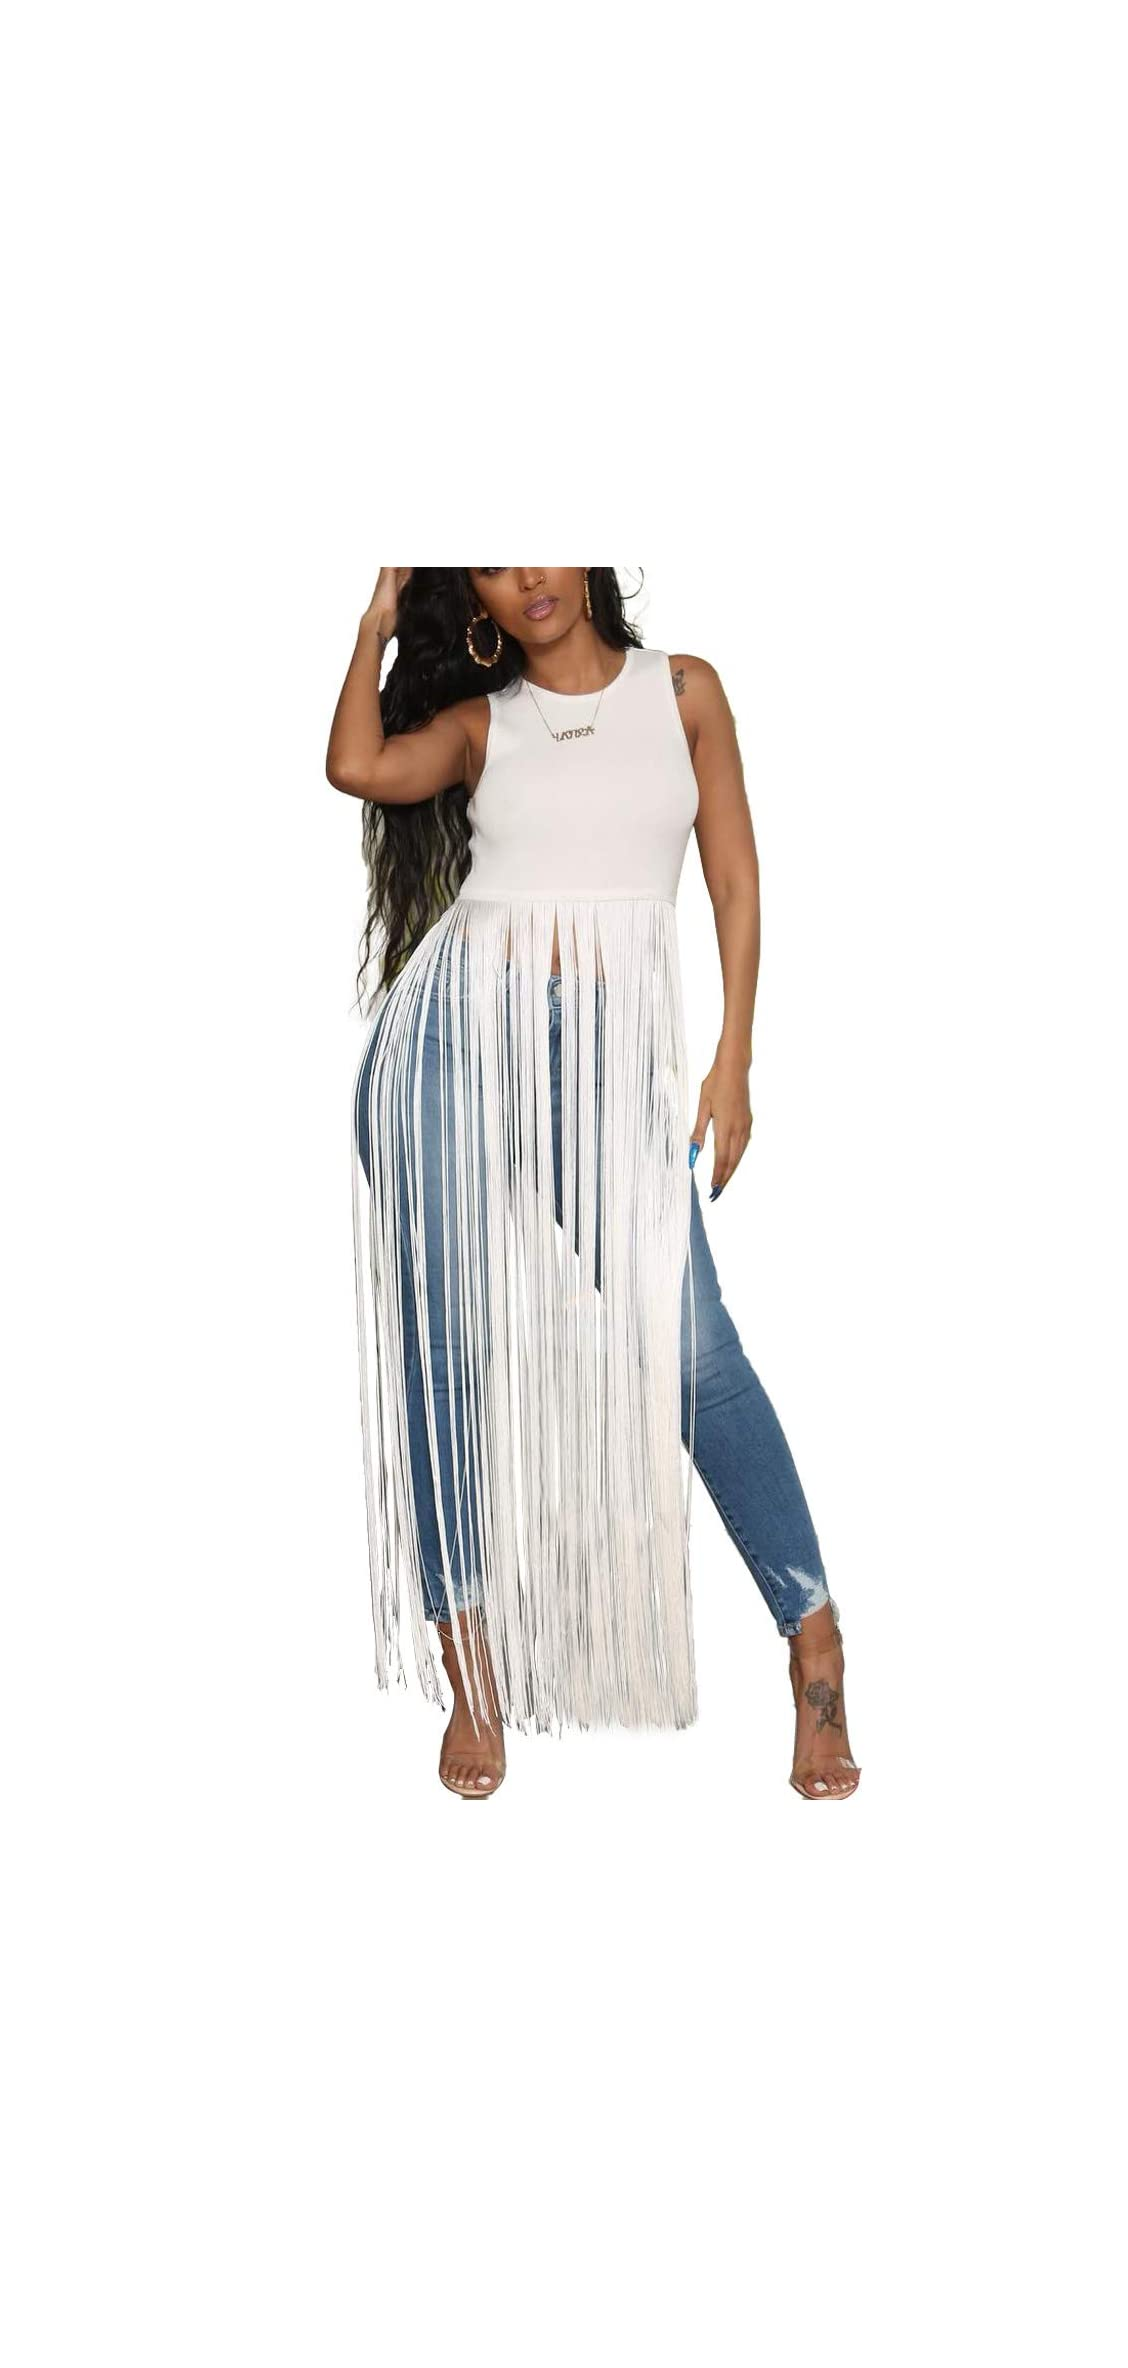 Women Sexy Sleeveless Top - Solid Color Long Fringe